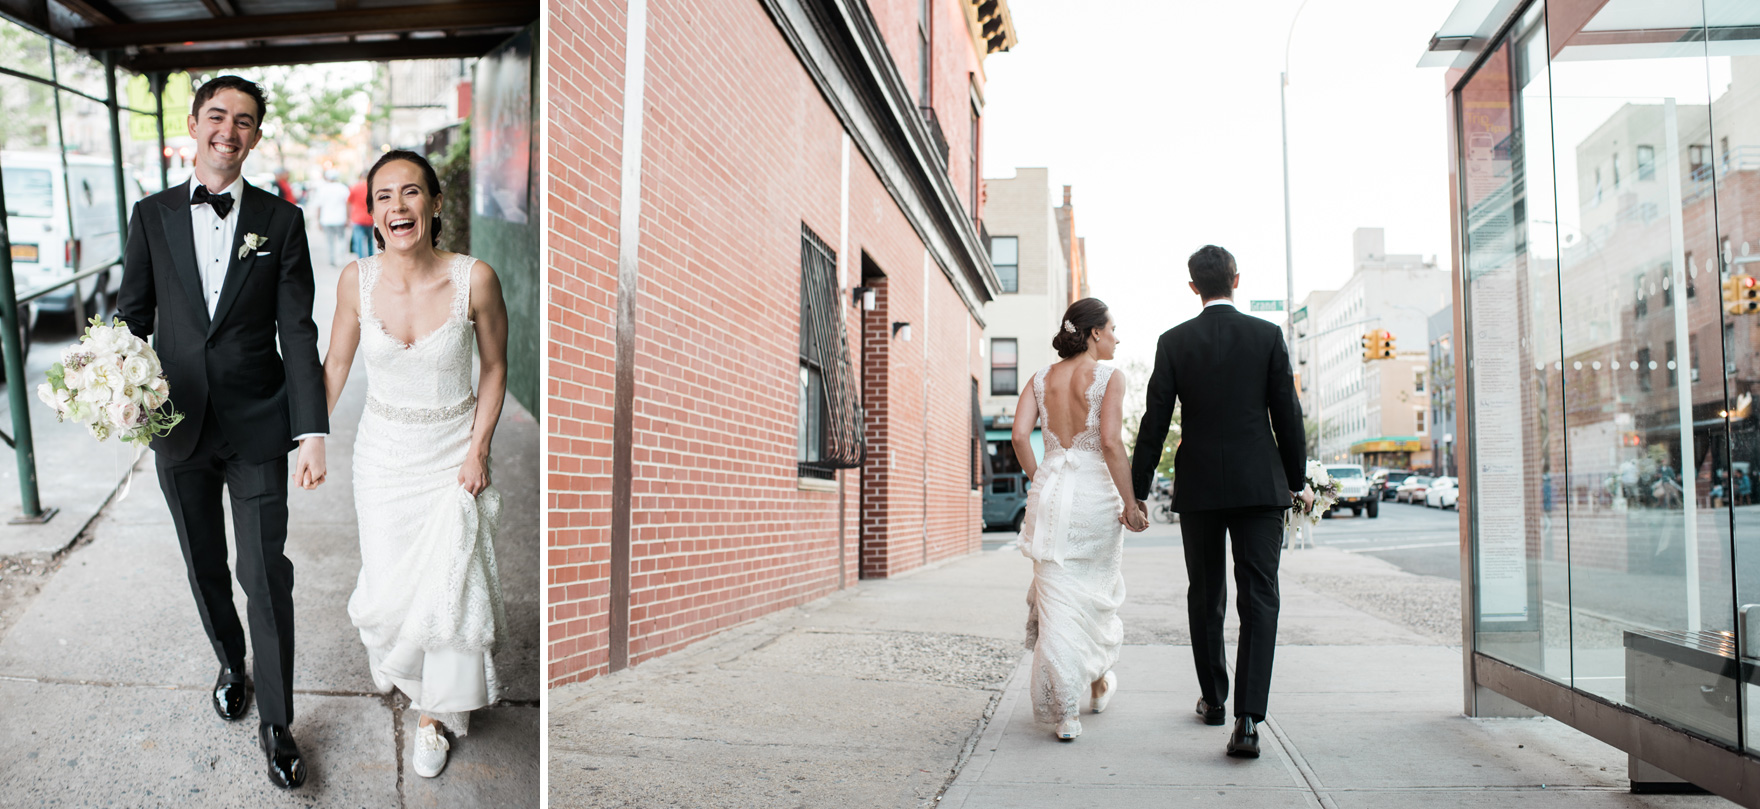 Williamsburg New York Fine Art Wedding by Christina Lilly Photography060